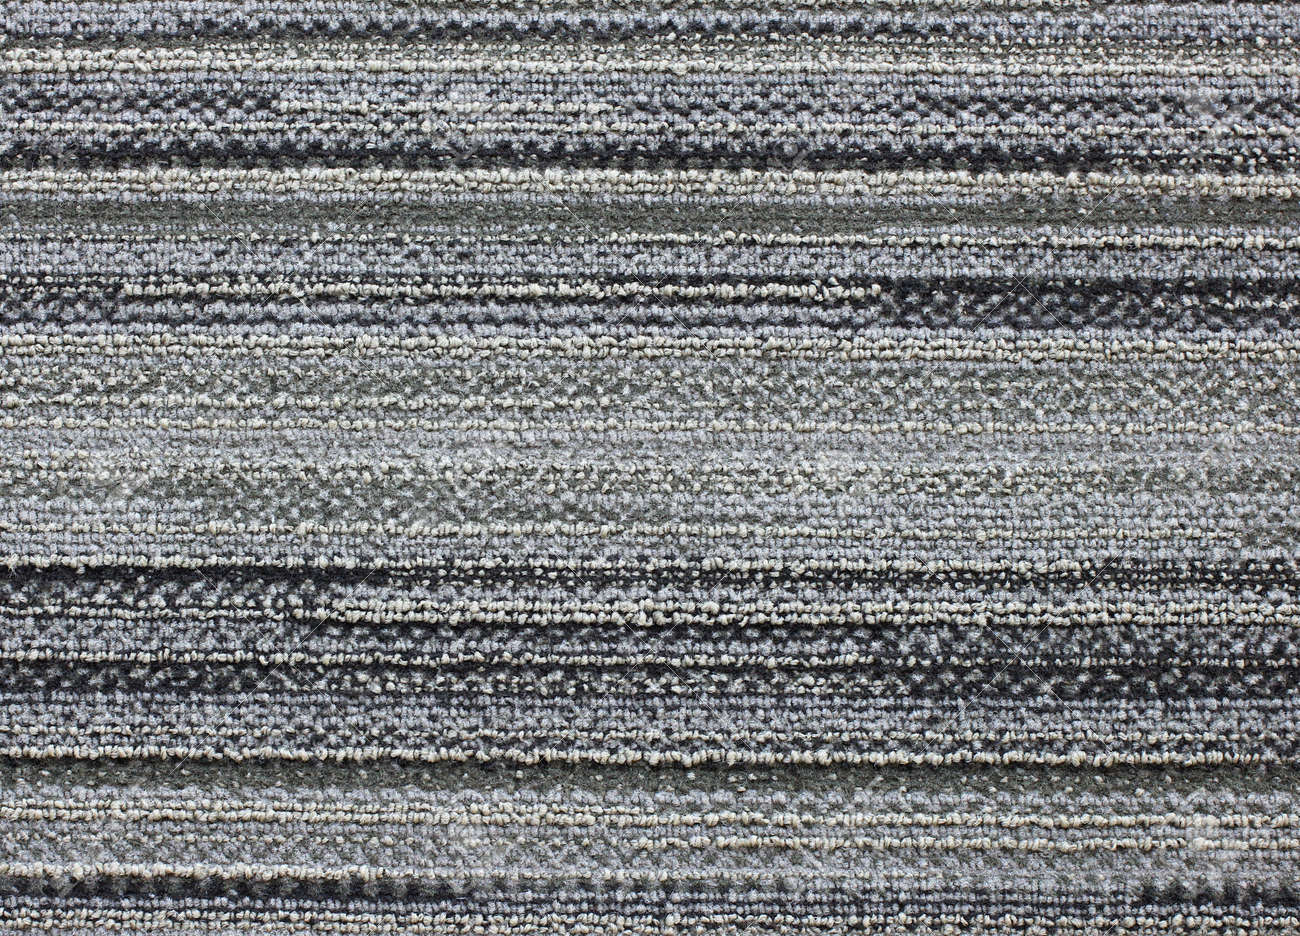 Grey Carpet Texture Background Stock Photo